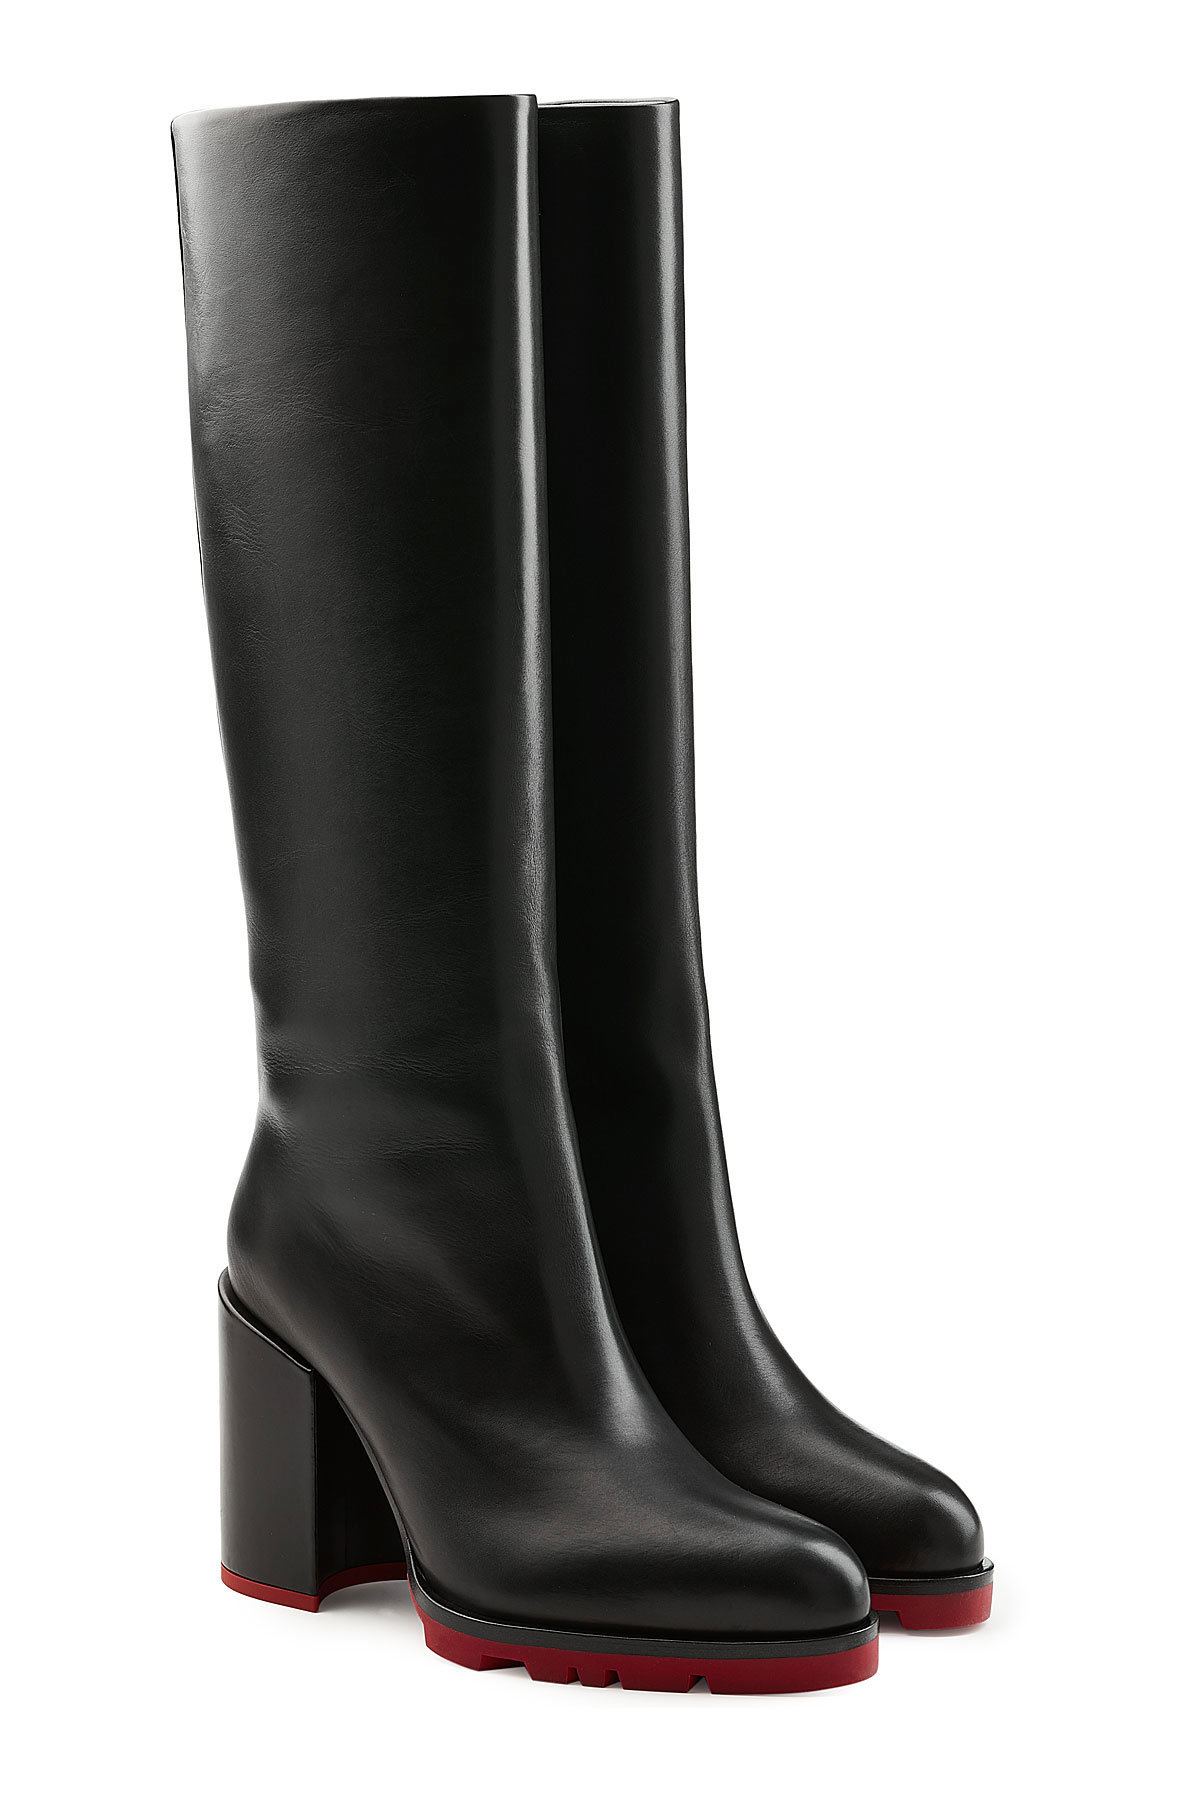 Jil Sander Leather Knee Boots Gr. IT 37 xBWve